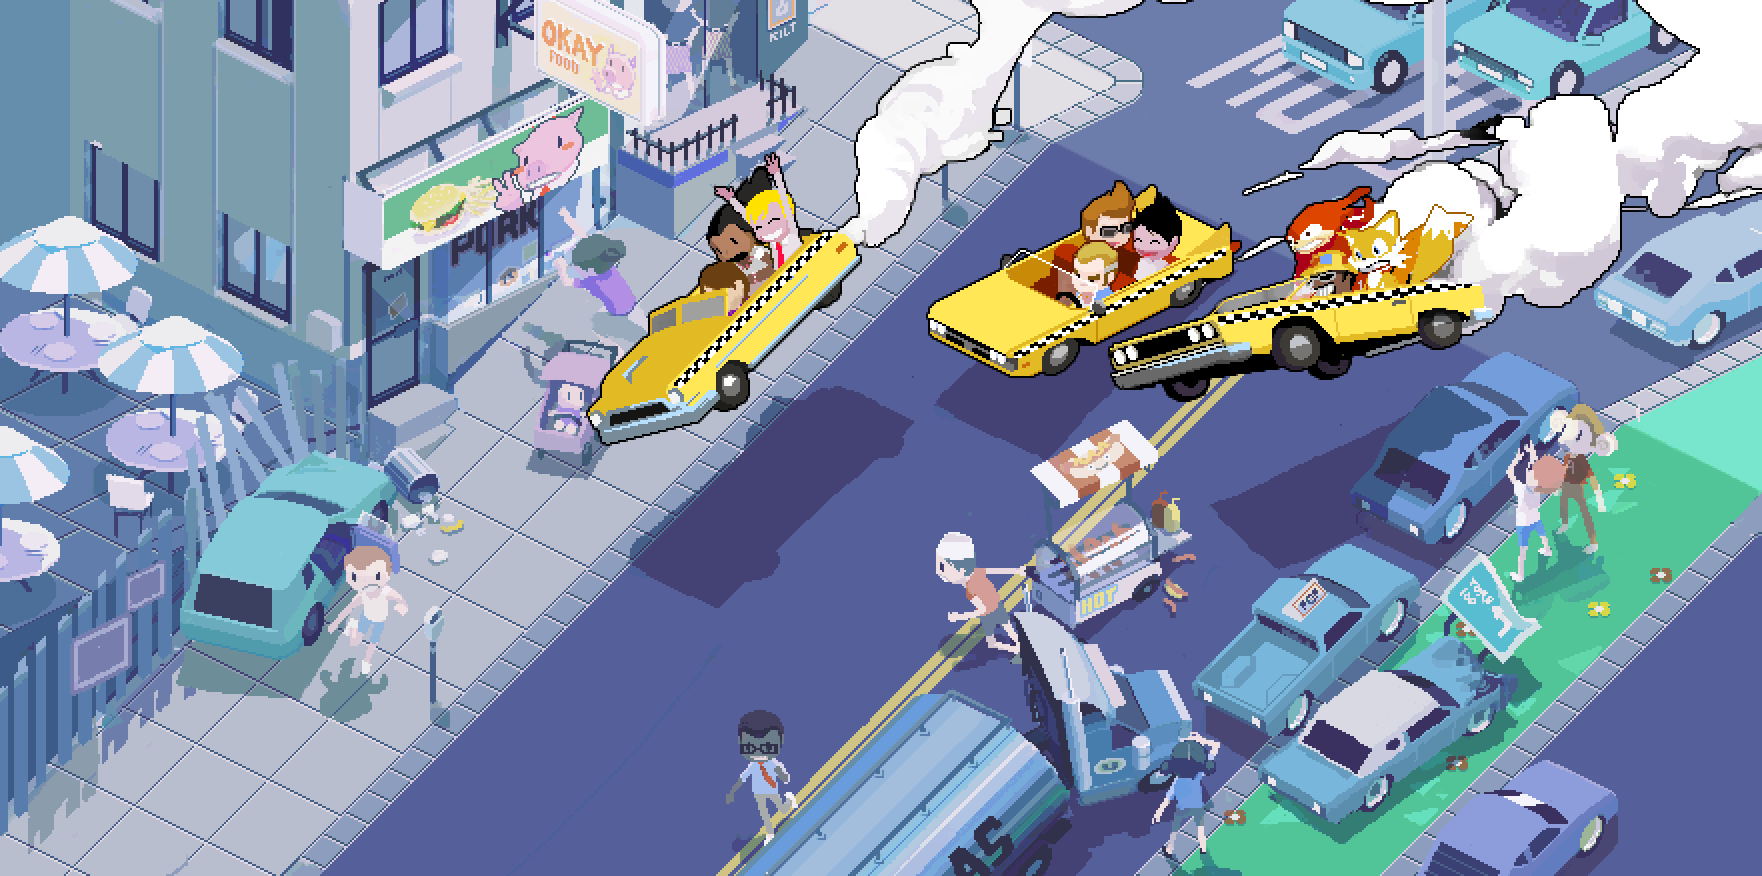 Those Are Some Crazy Taxis